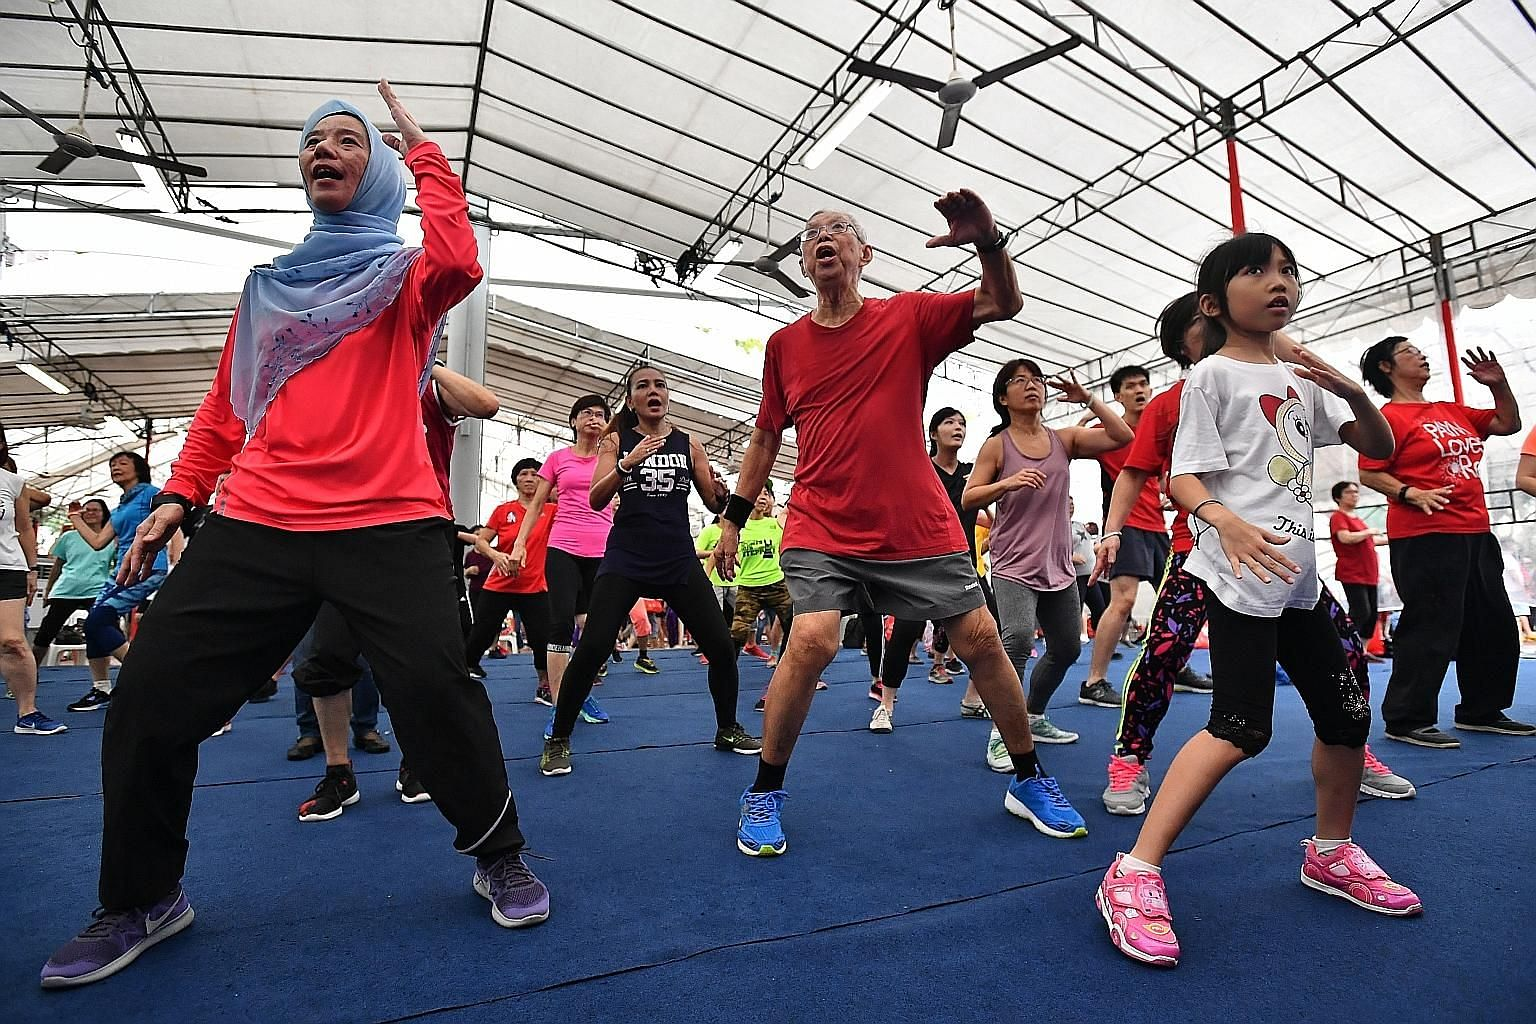 Residents doing a KpopX dance at Toa Payoh Central yesterday, during the launch of the Programme for Active Living, which aims to encourage residents in Bishan-Toa Payoh GRC to develop a lifestyle of regular exercise.